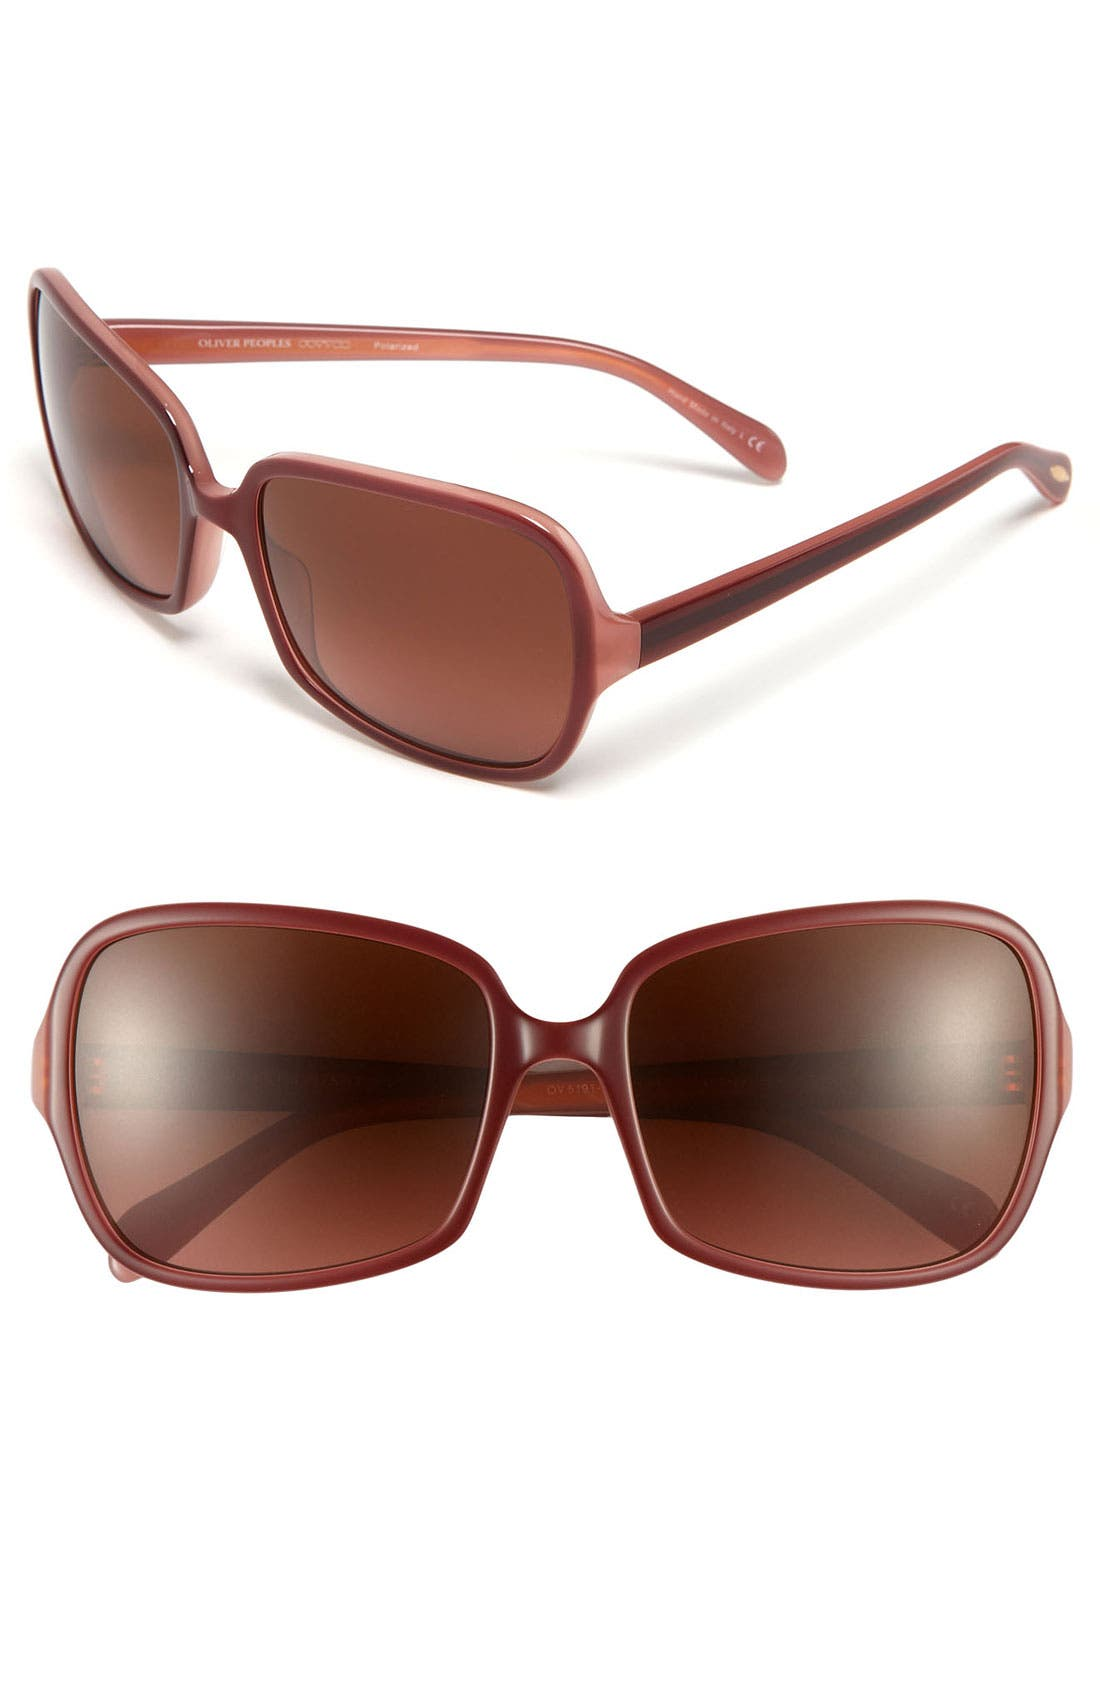 Main Image - Oliver Peoples 'Francesca' Polarized Sunglasses